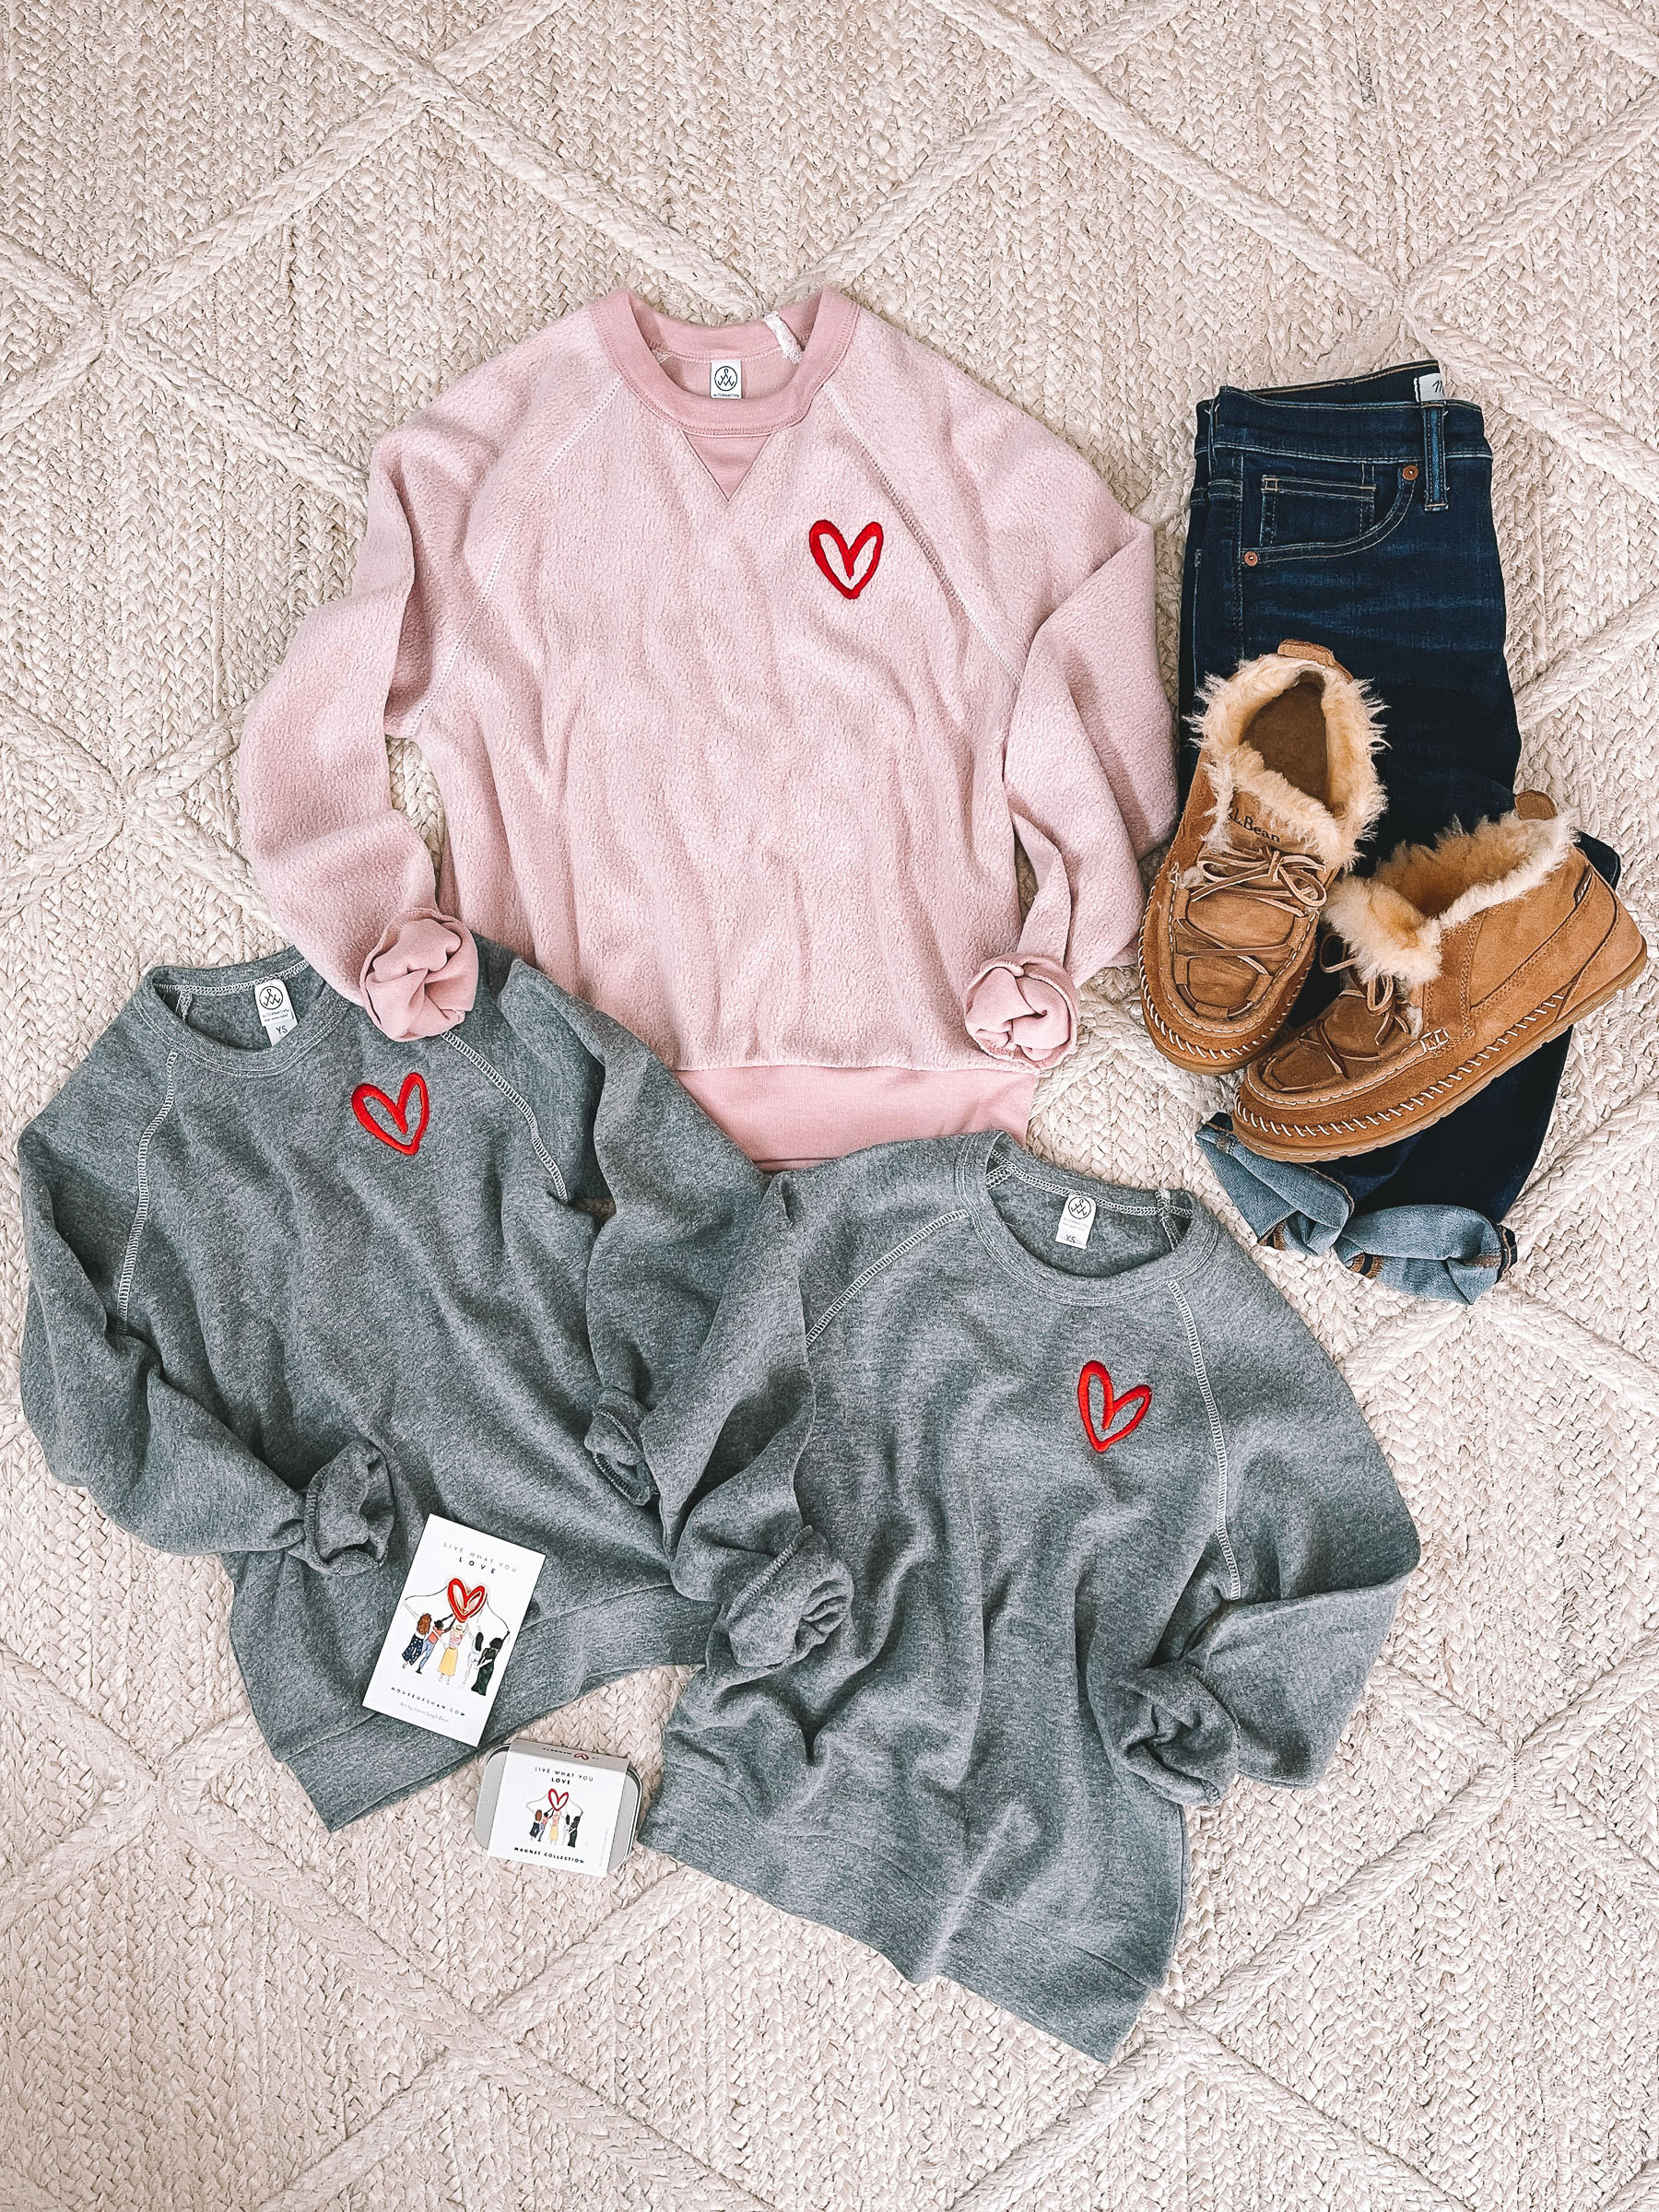 10 Preppy Valentines Day Outfits   House of Shan Sweatshirt / House of Shan Kids' Sweatshirts